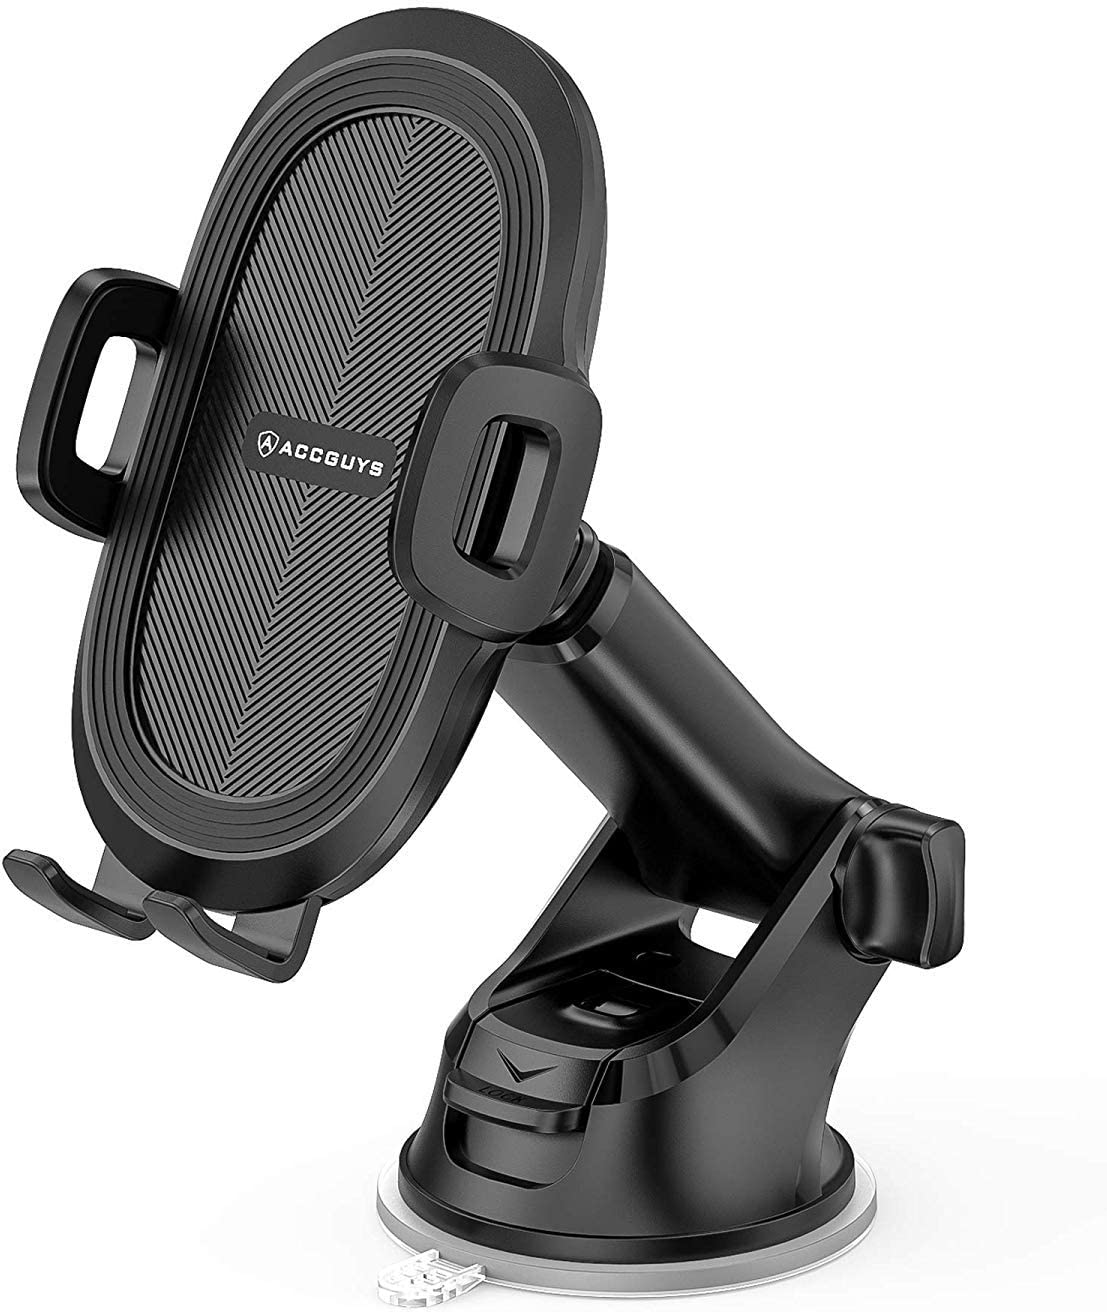 ACCGUYS Car Phone Mount Cell Vent Air Dash wholesale shipfree Holder for